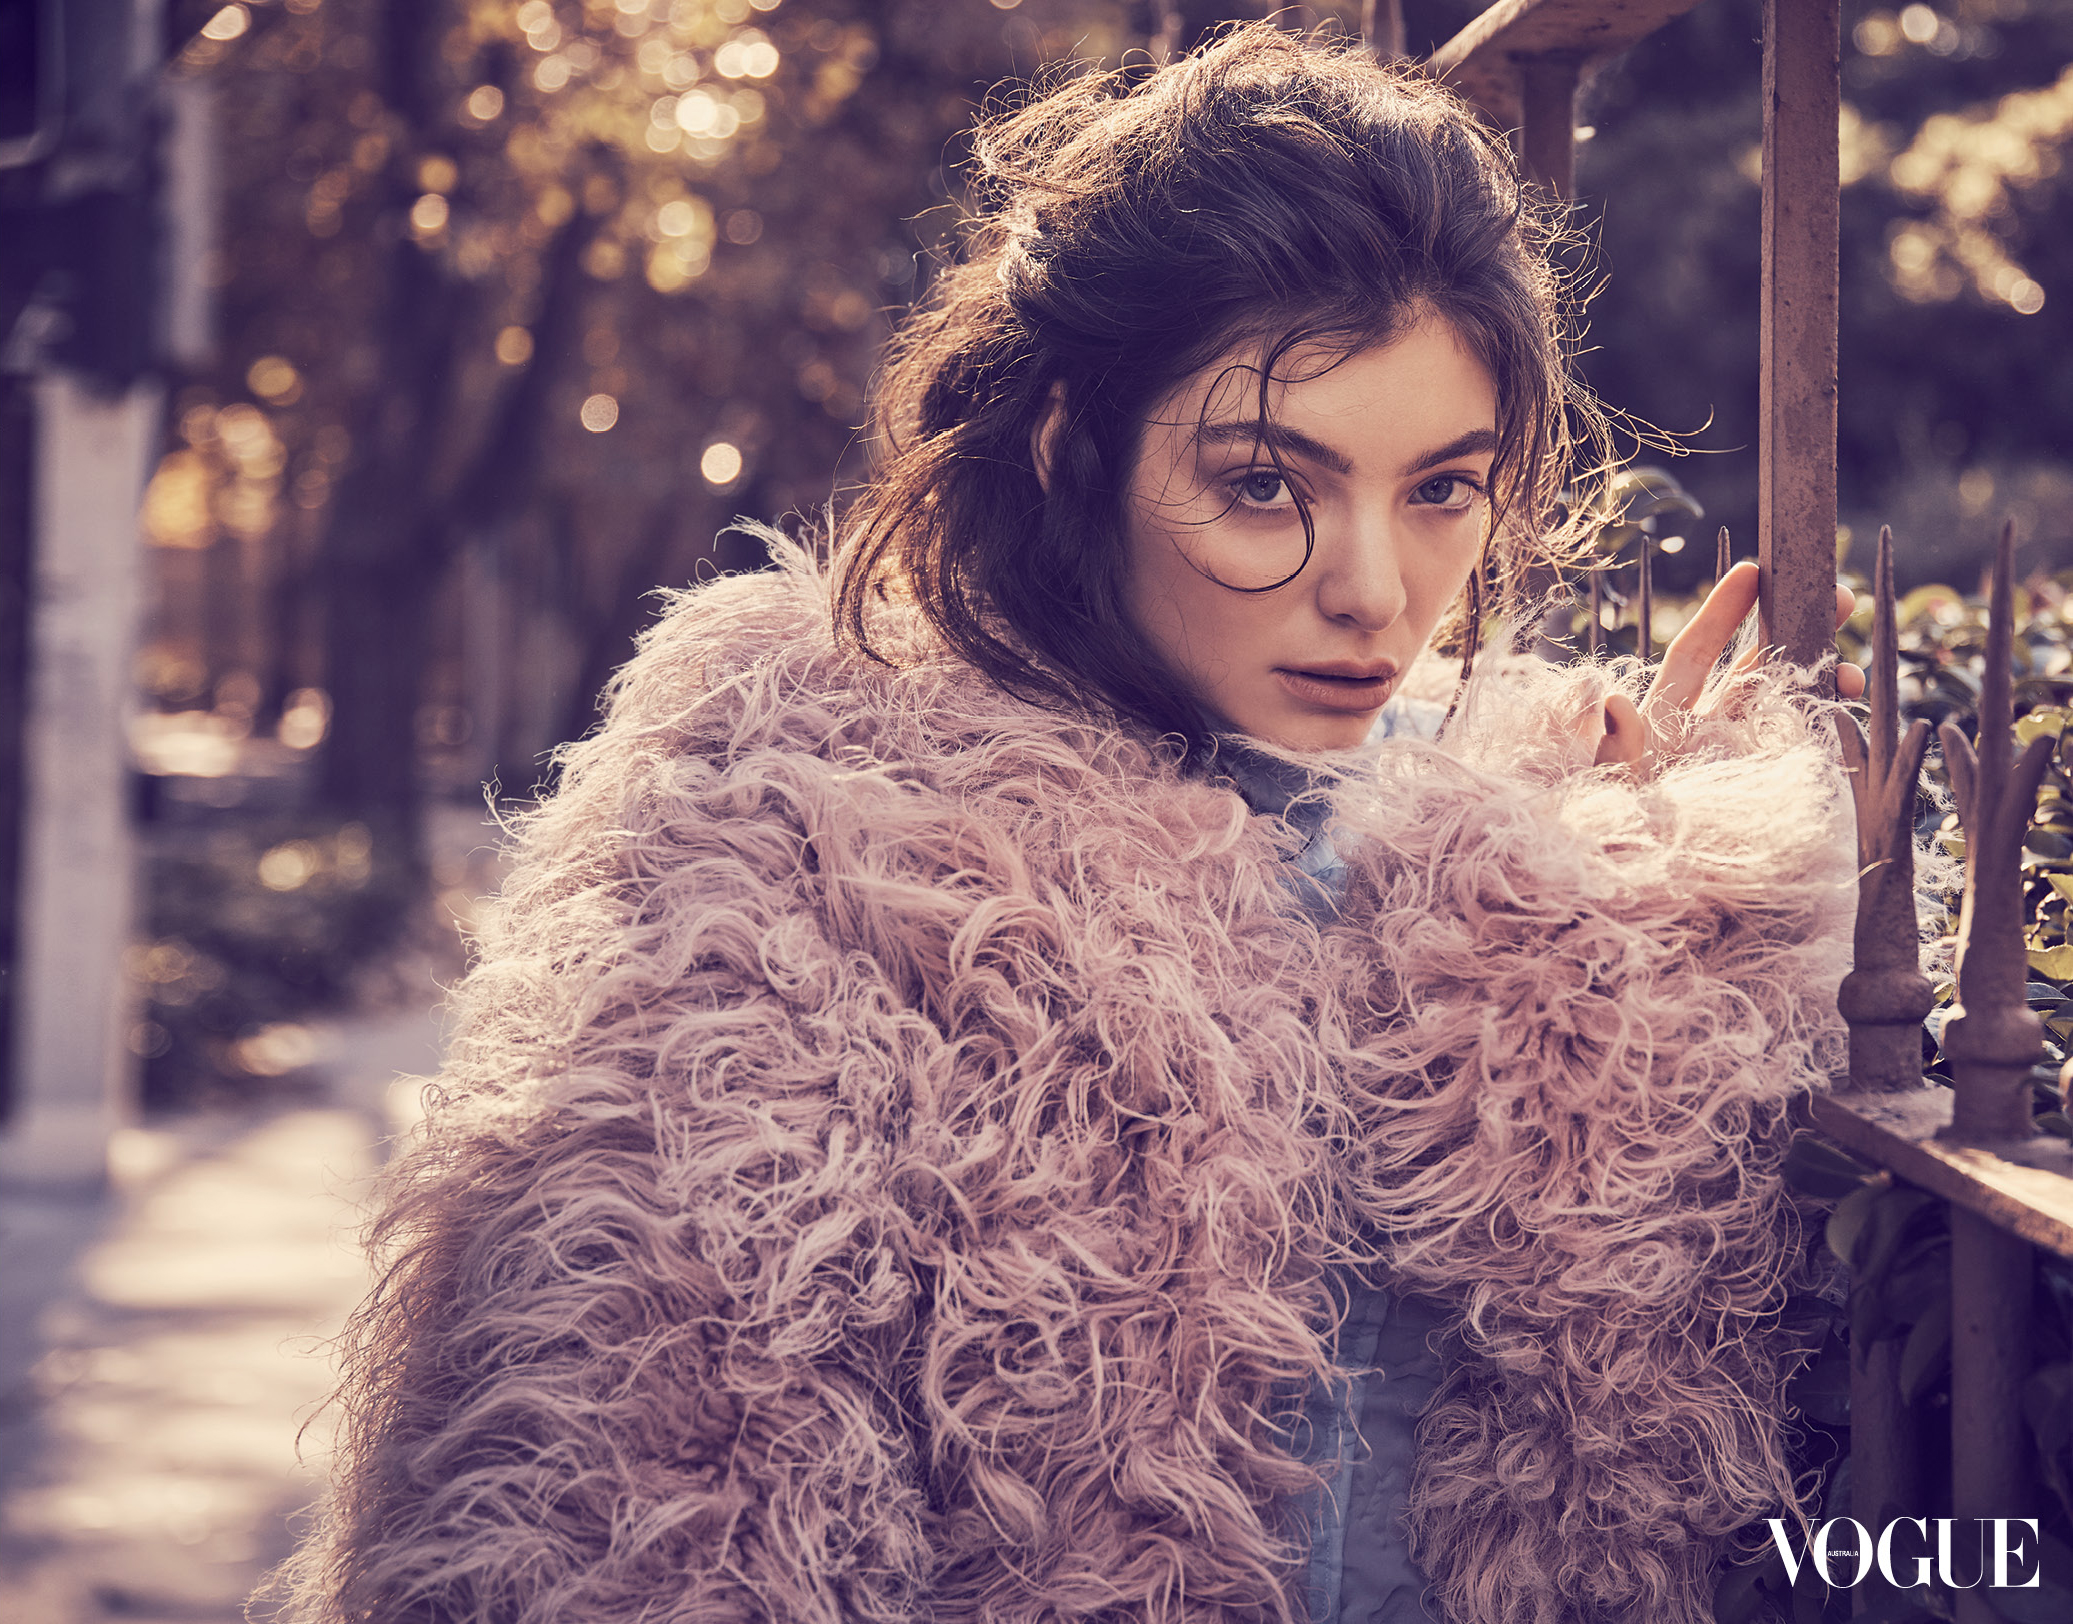 LORDE Covers Vogue, Talks About Becoming an Adult!